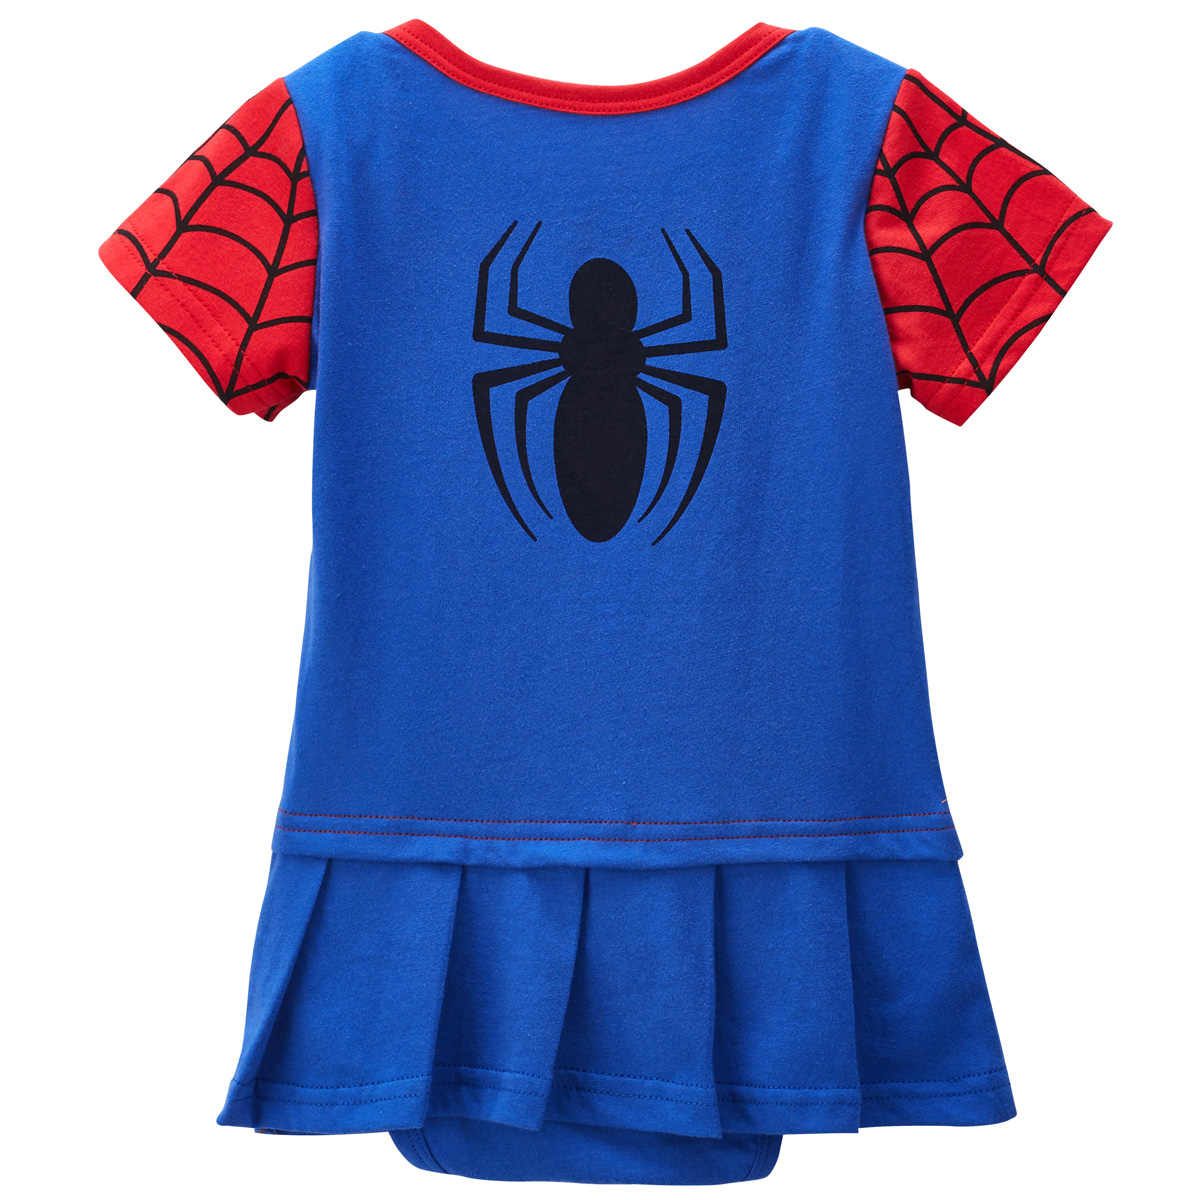 2ef05e2cf3baa Baby Boys Girls Spiderman Costume Newborn Avengers Romper Toddler Party  Playsuit Superhero Cosplay Jumpsuit Infant boy clothing